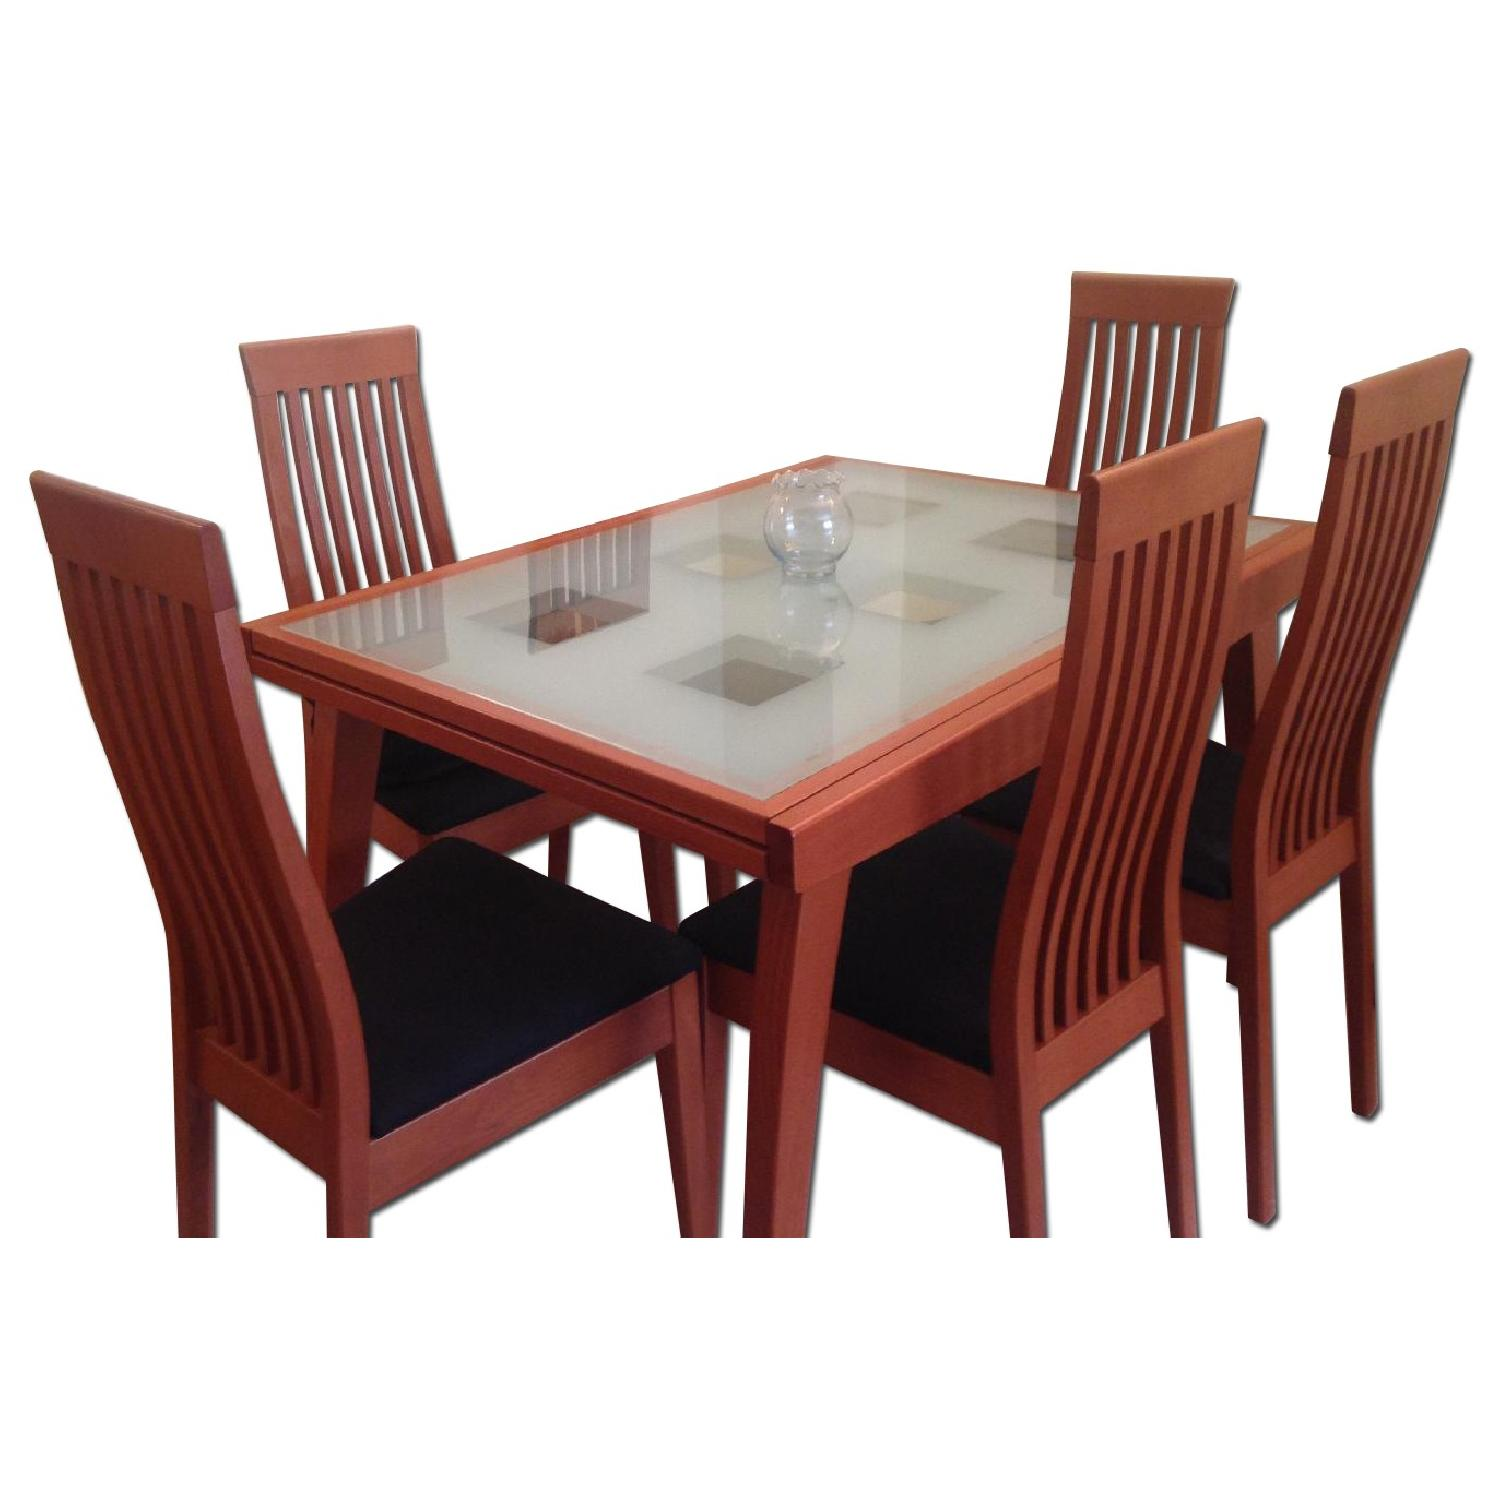 Calligaris Dining Table w/ 6 Chairs - image-0